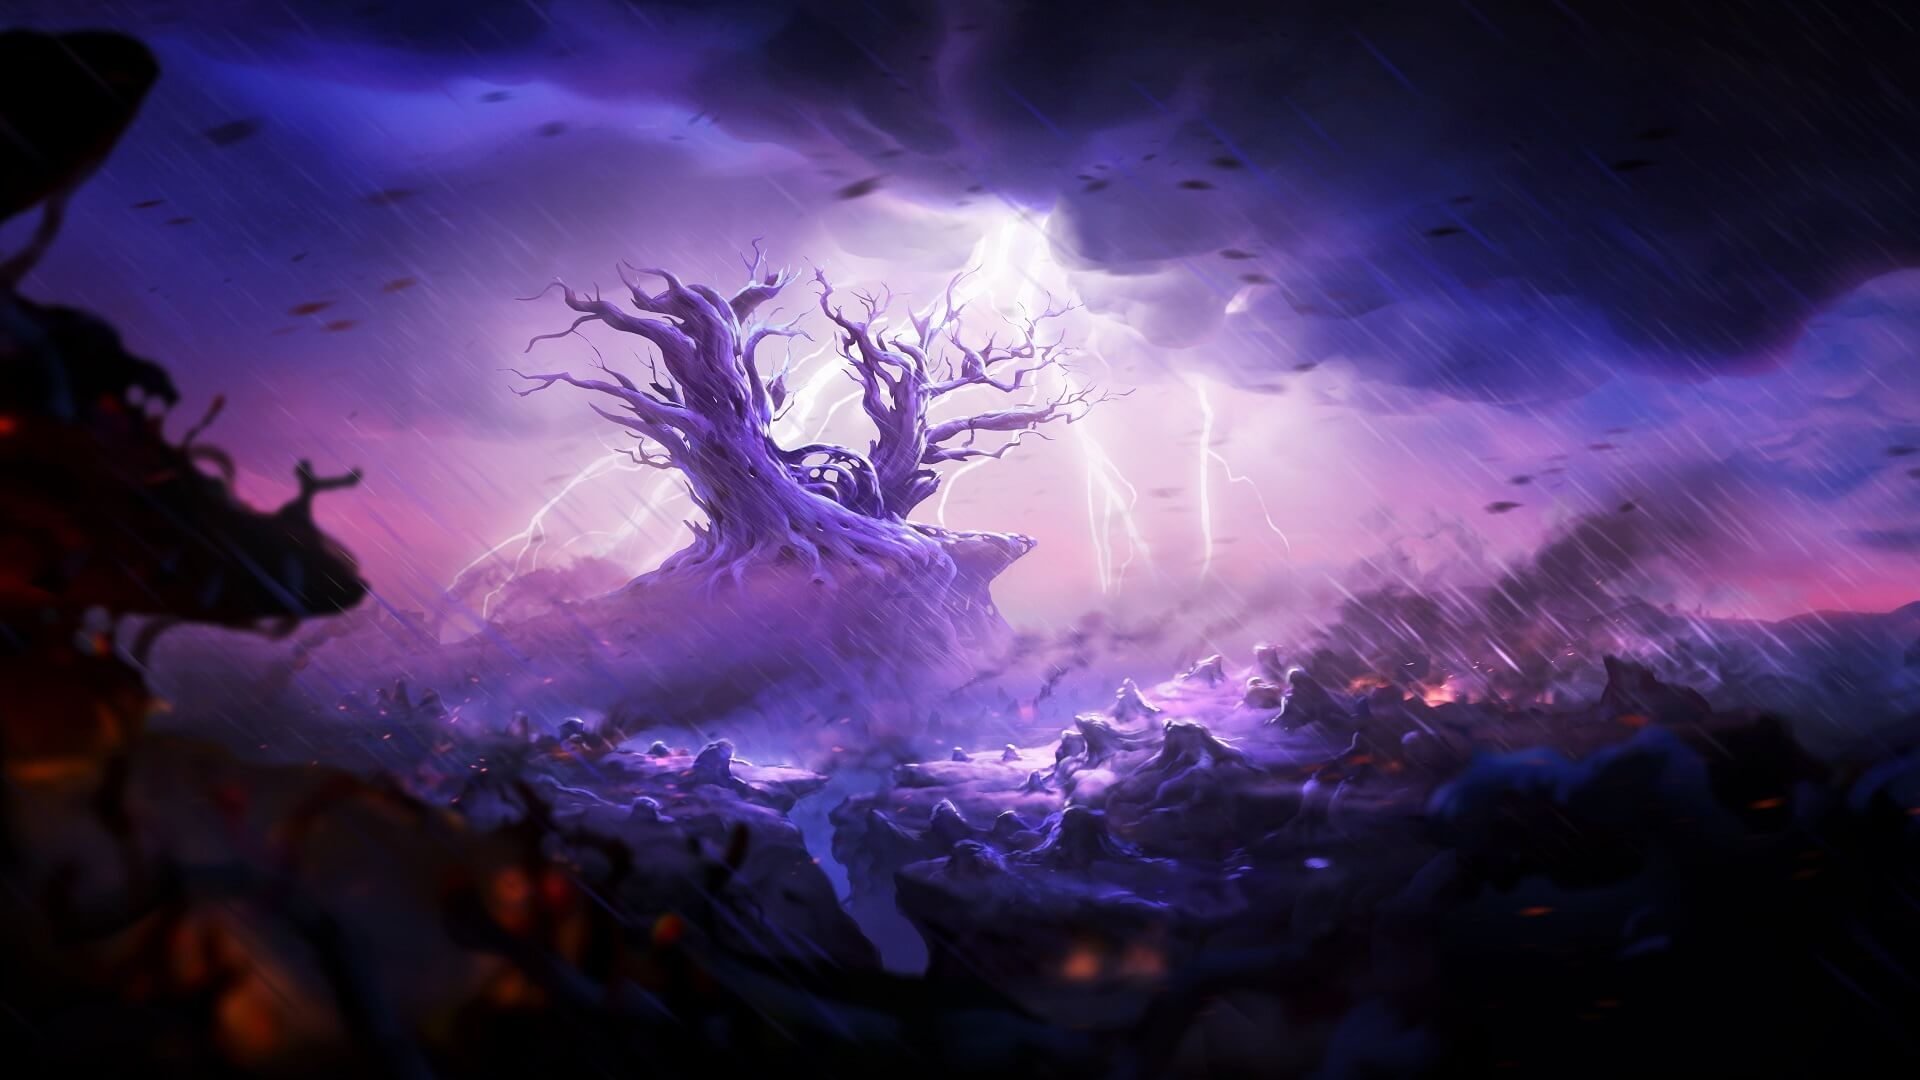 Ori and the Will of the Wisps Game Wallpaper 62048 1920x1080px 1920x1080